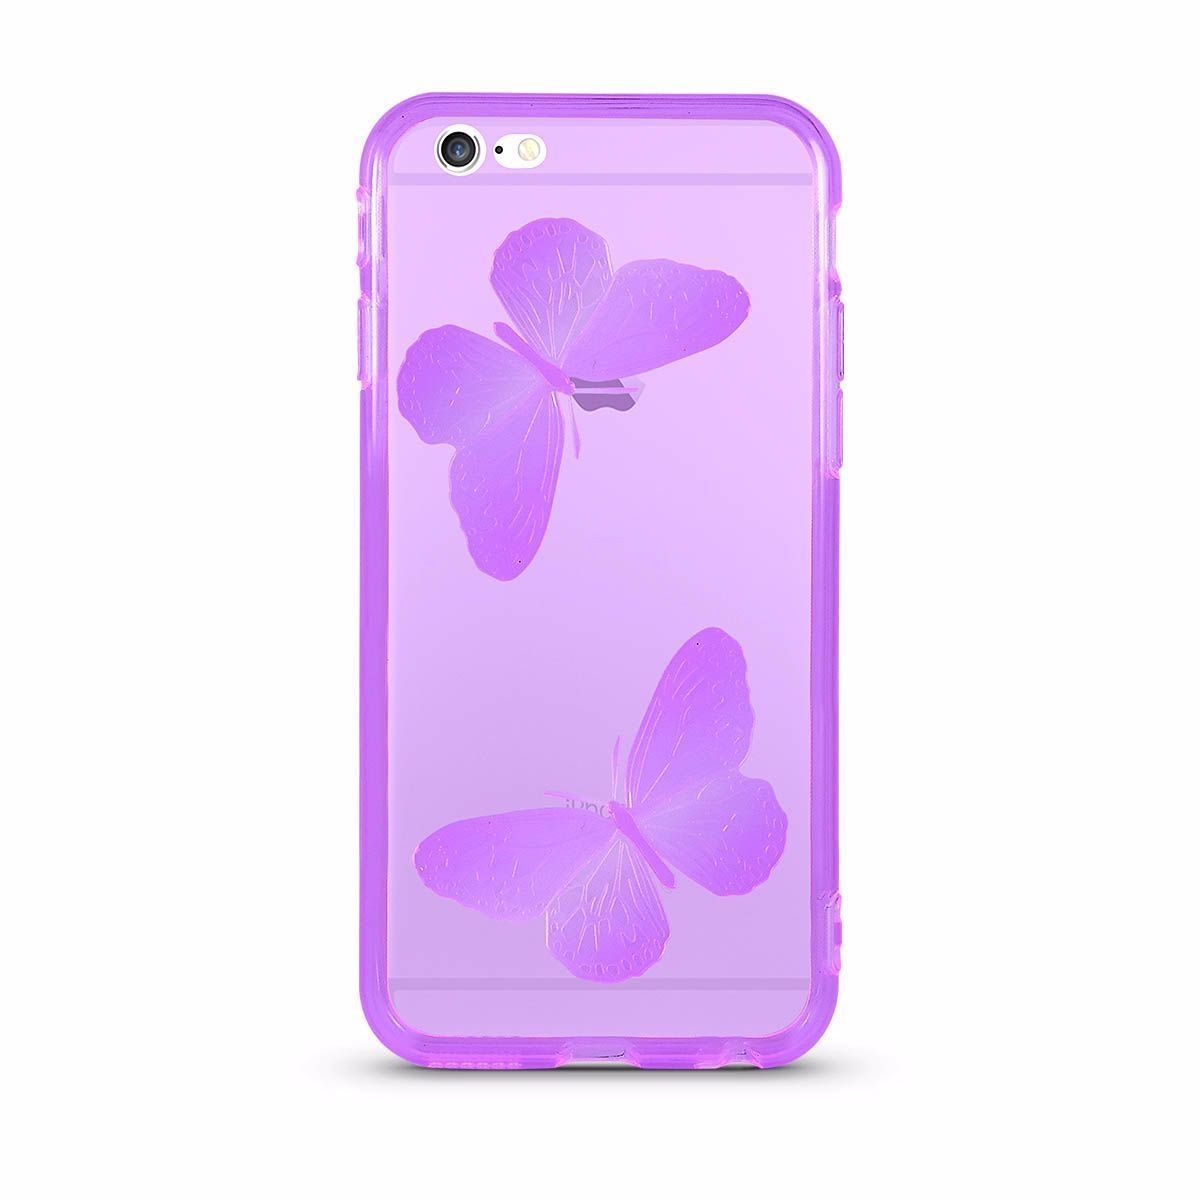 Colormot Case for iPhone 6 - Purple